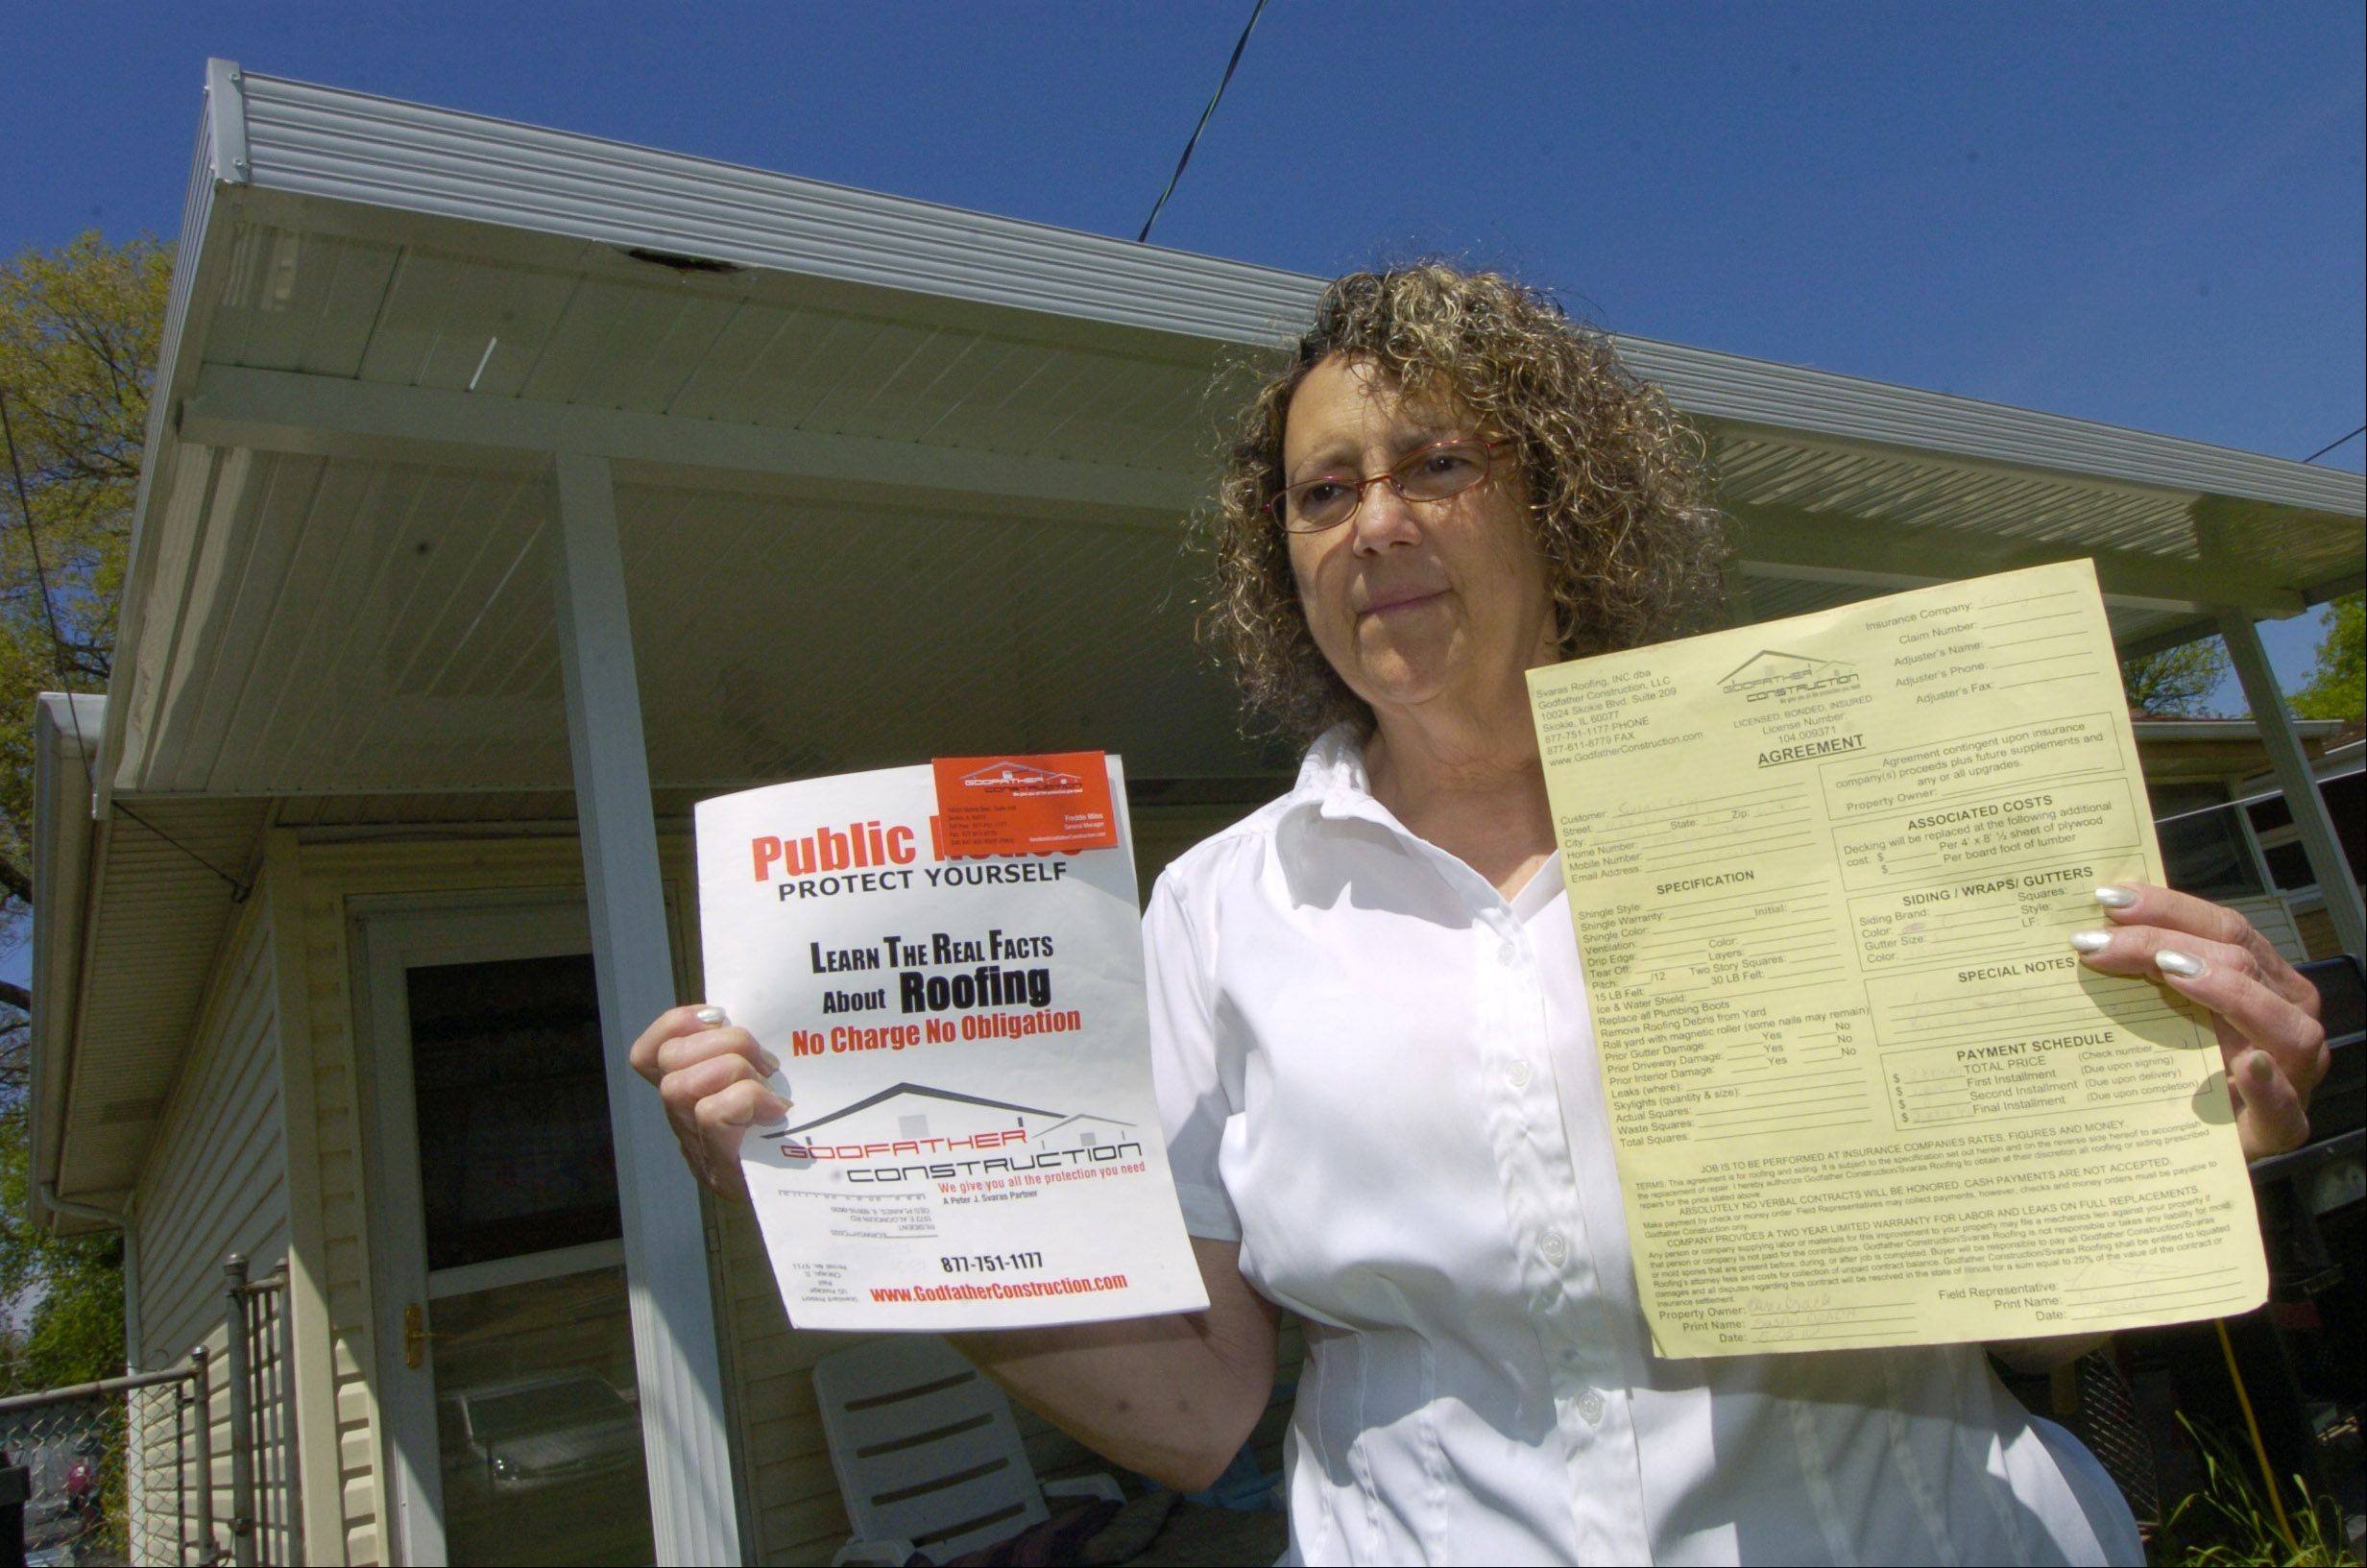 Susan Czach of Des Plaines holds up a brochure, left, from Godfather Construction warning people about storm chasers, fly-by-night companies that move into storm-damaged areas, which, ironically, is exactly what they are accused of doing. At right is her contract with the company.